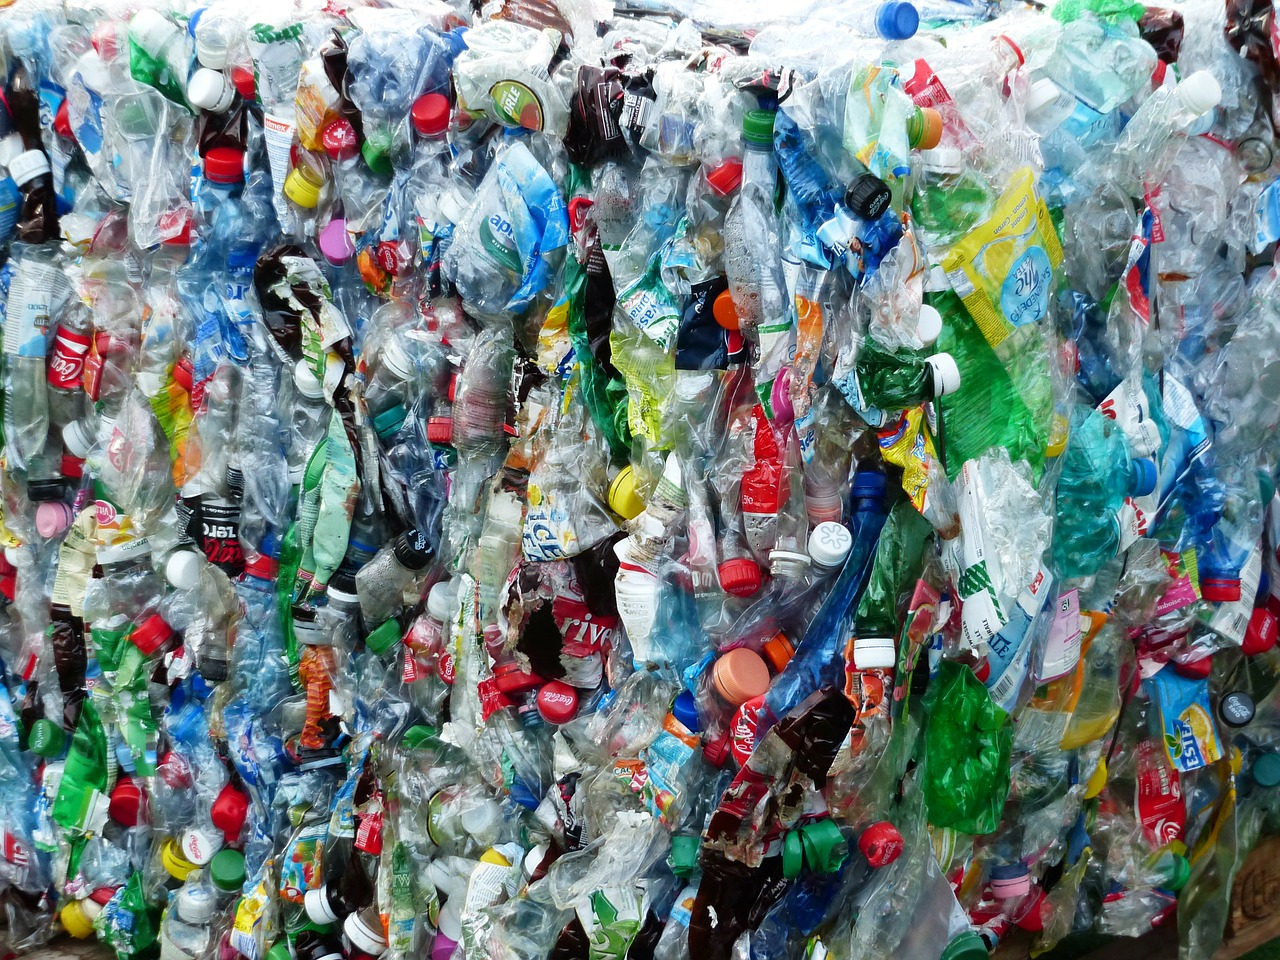 Why Recycling Shouldn't Be Our Only Solution for Reducing Landfill Waste